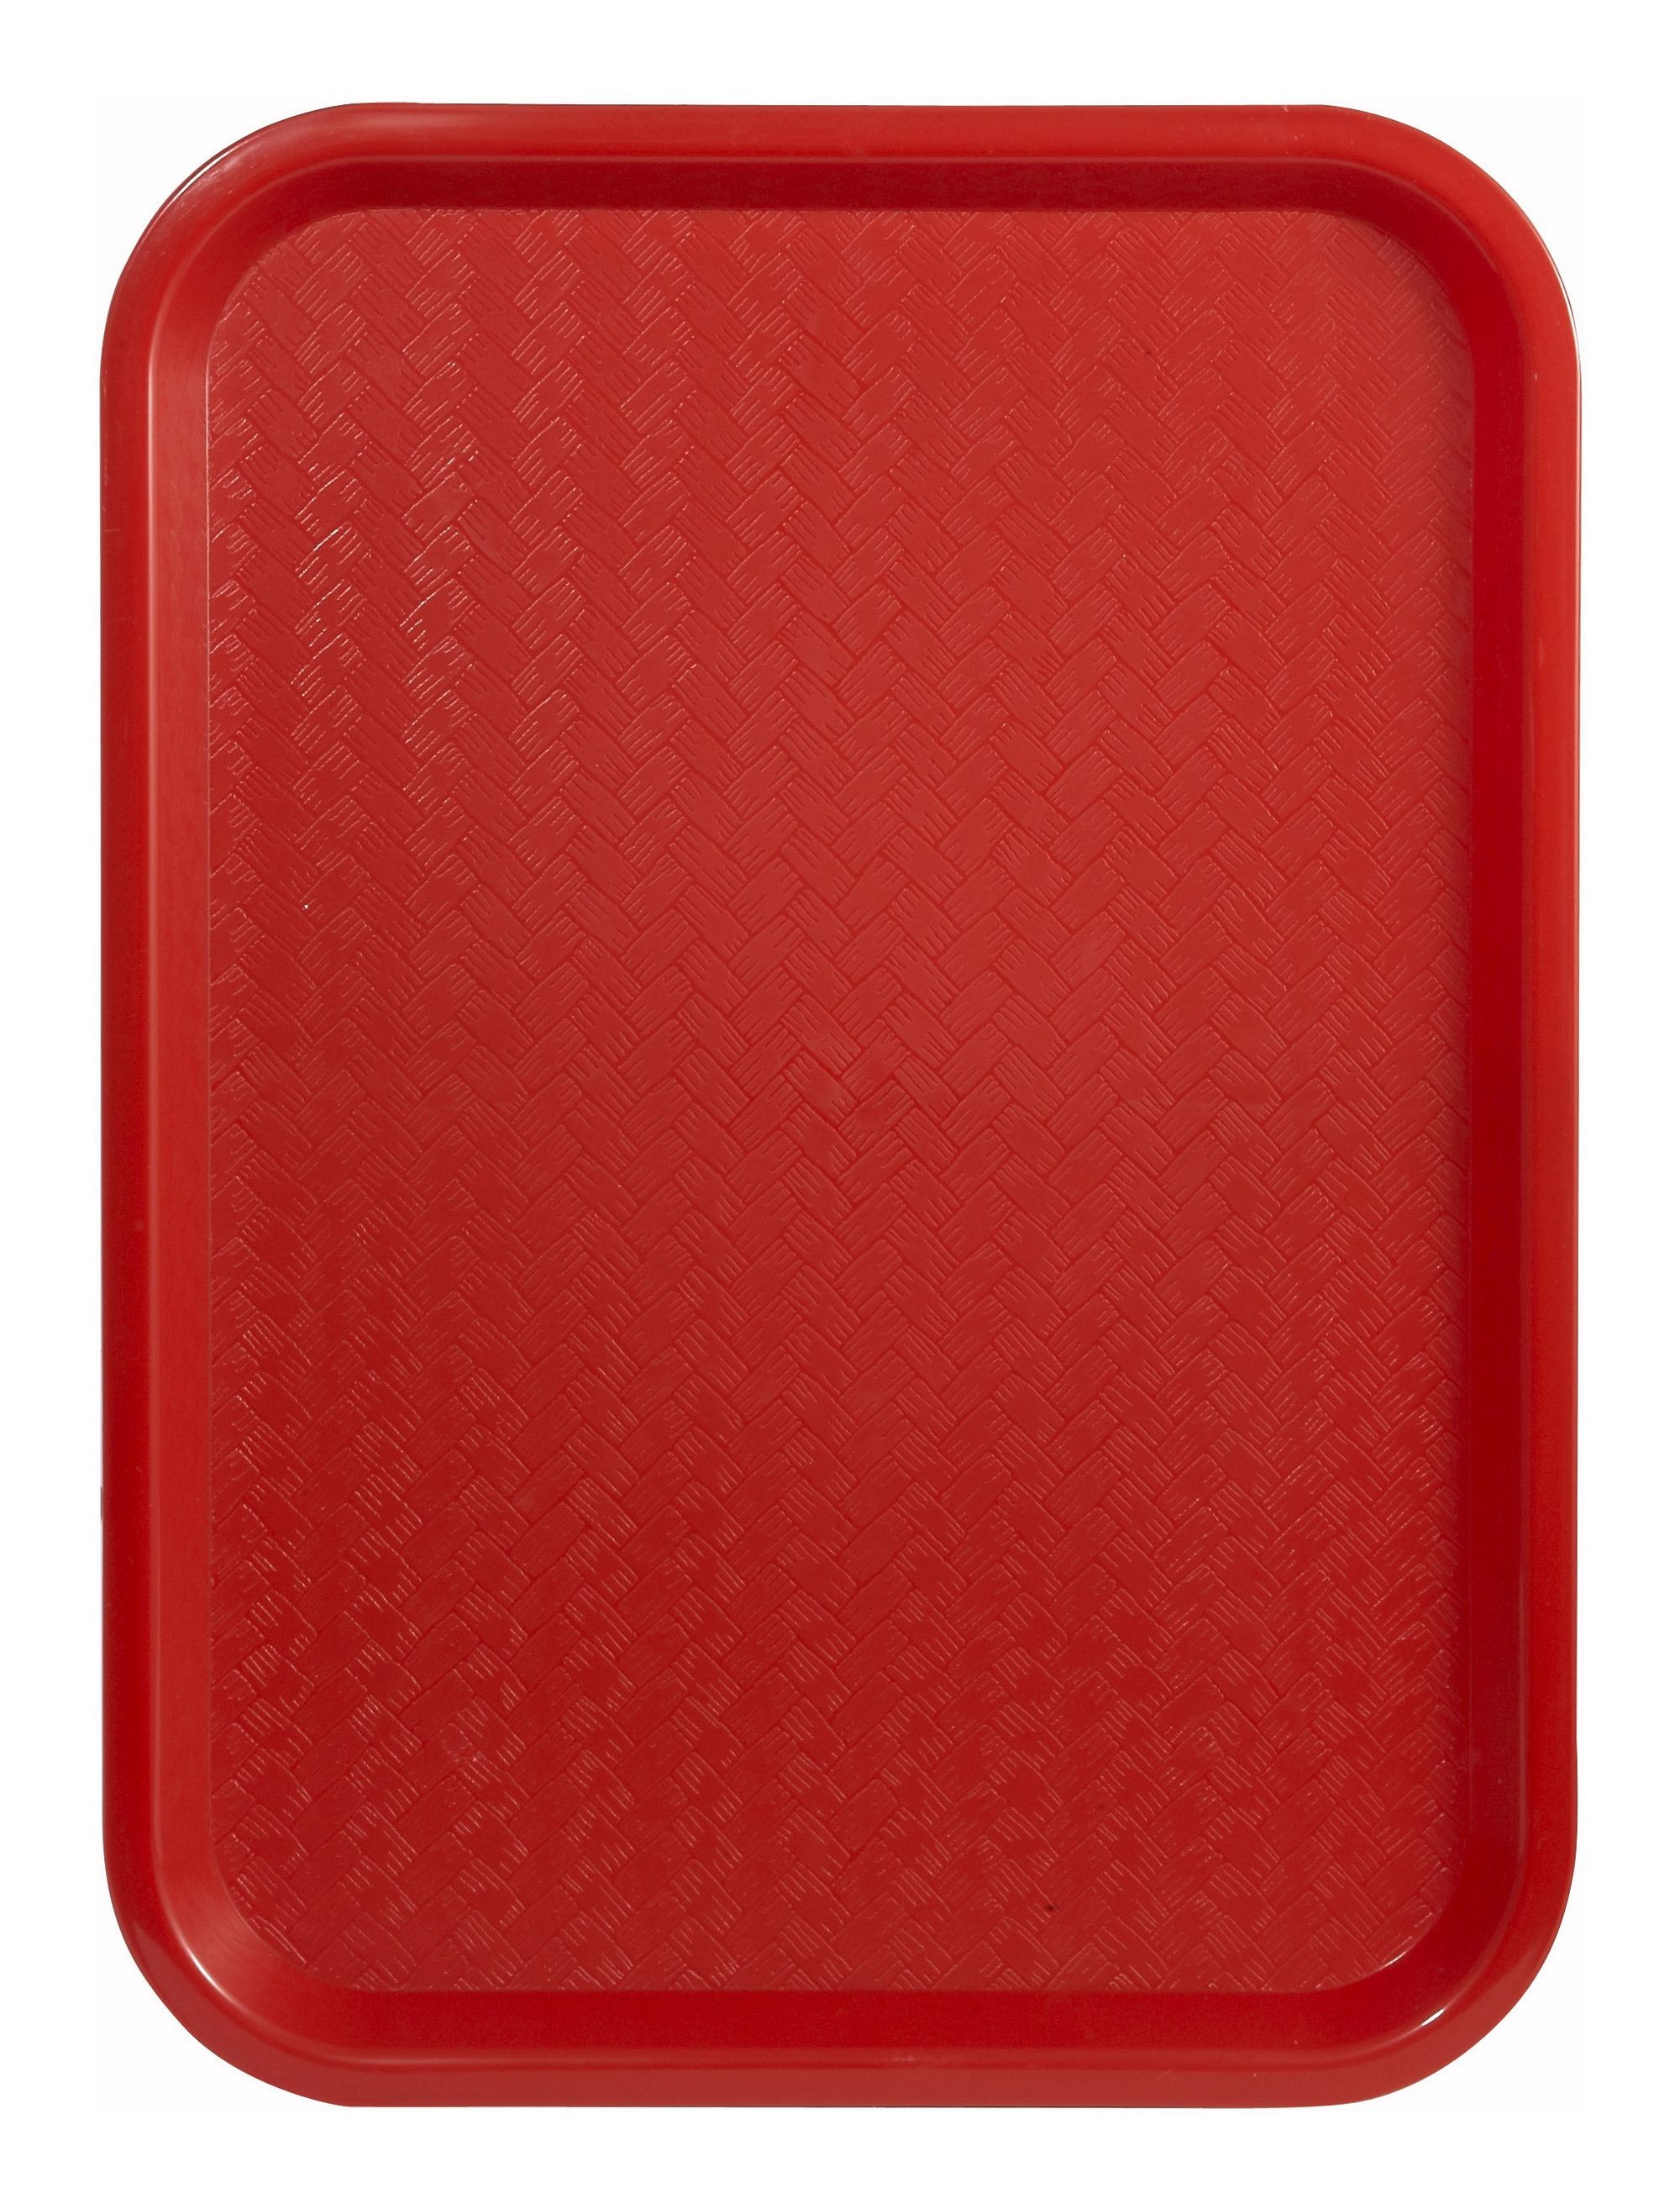 "Winco fft-1418r Red Plastic Fast Food Tray 14"" x 18"""